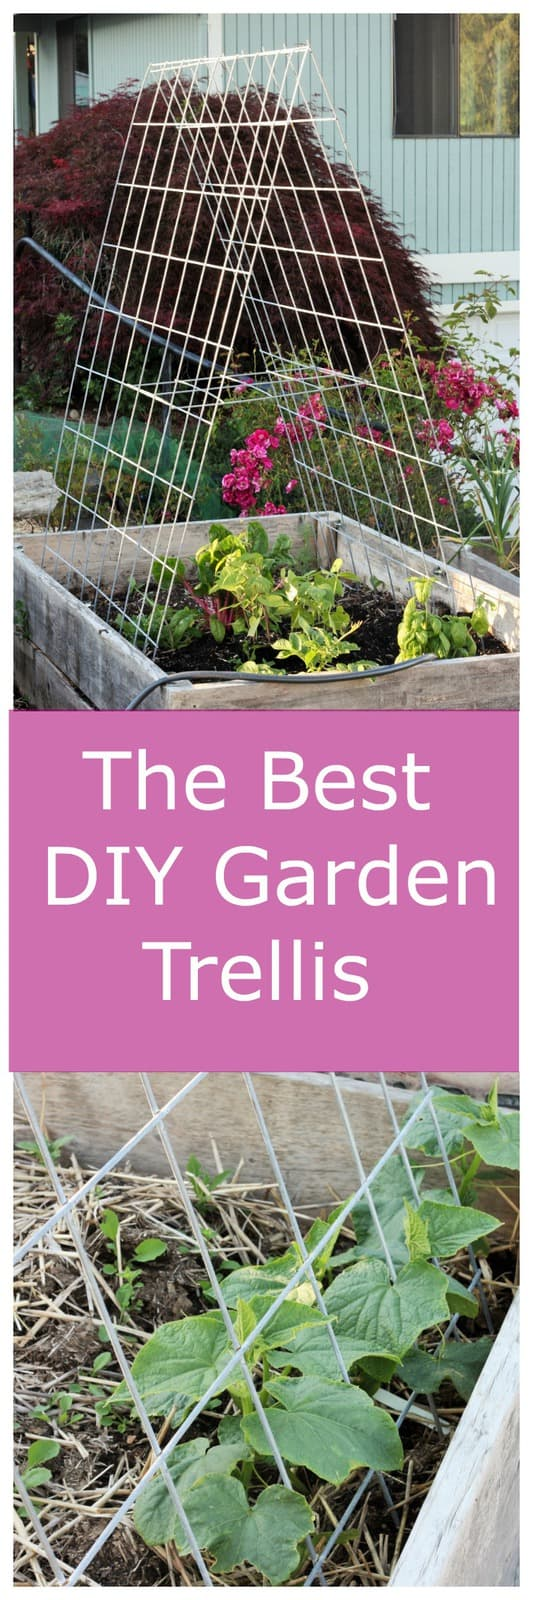 Learn how easy it is to build a DIY garden trellis for your fruit, vegetable, or flower garden. Simple cattle panels create strong and long-lasting garden trellises that you can use year after year.